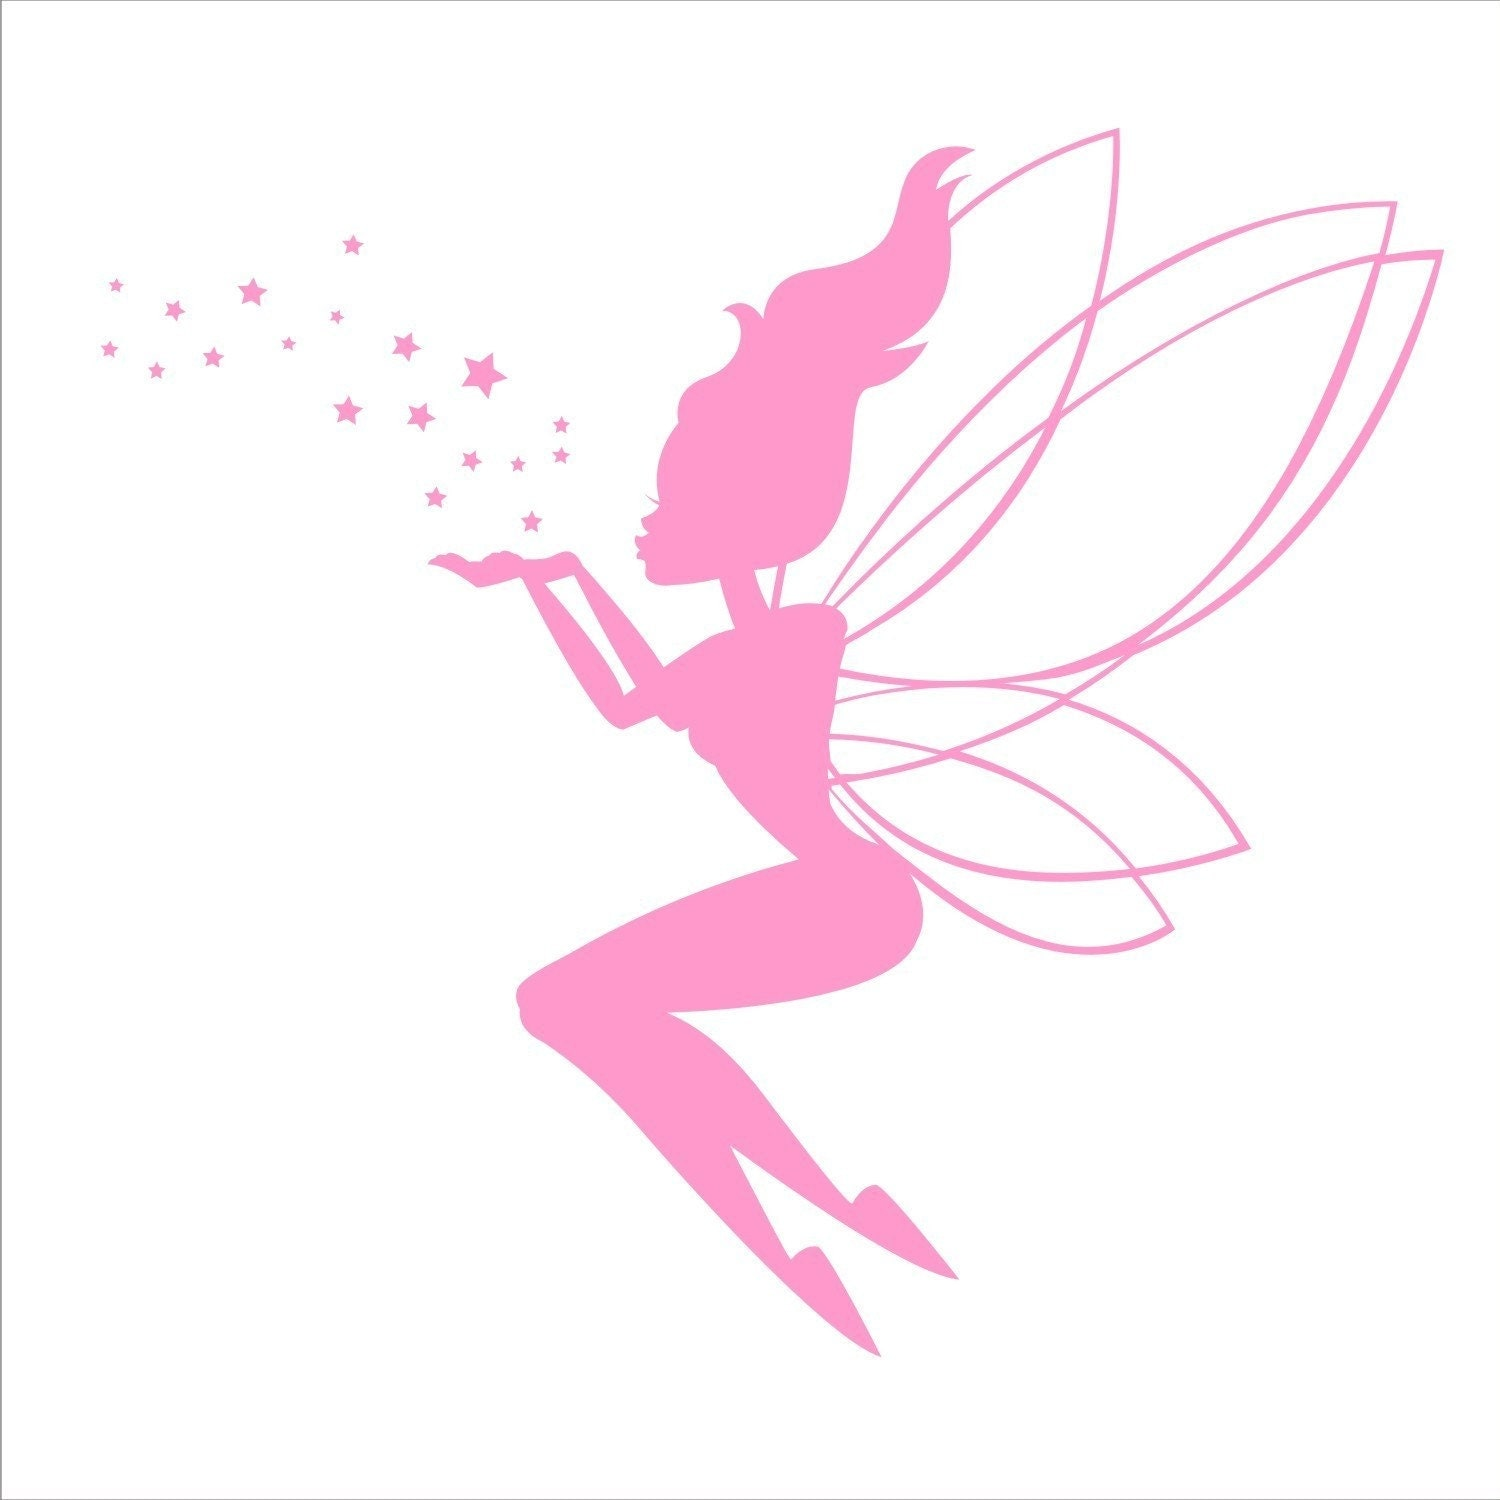 fairy wall decal blowing stars by fairydustdecals on etsy. Black Bedroom Furniture Sets. Home Design Ideas